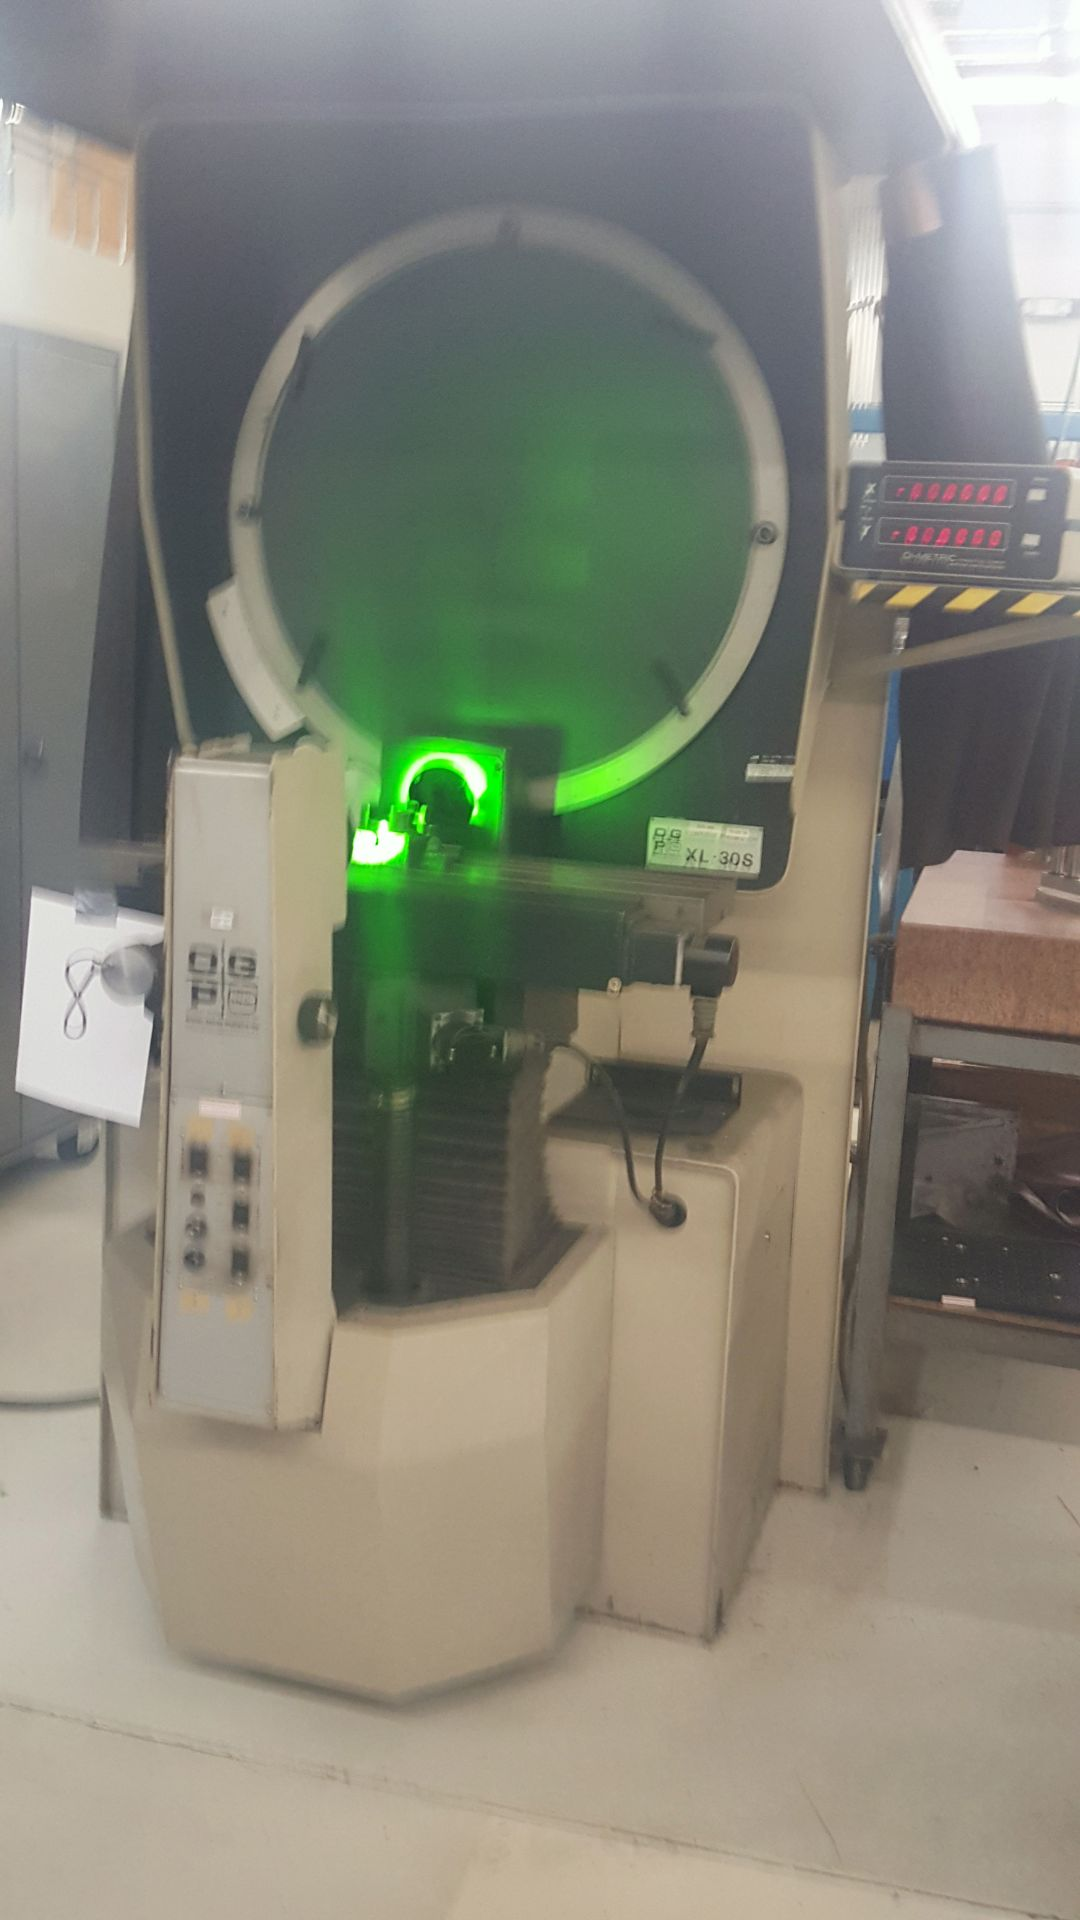 "OGP 30"" Optical Comparator Projector, Model IXL-827, XL30S, S/N 8270292, under power - Image 2 of 8"